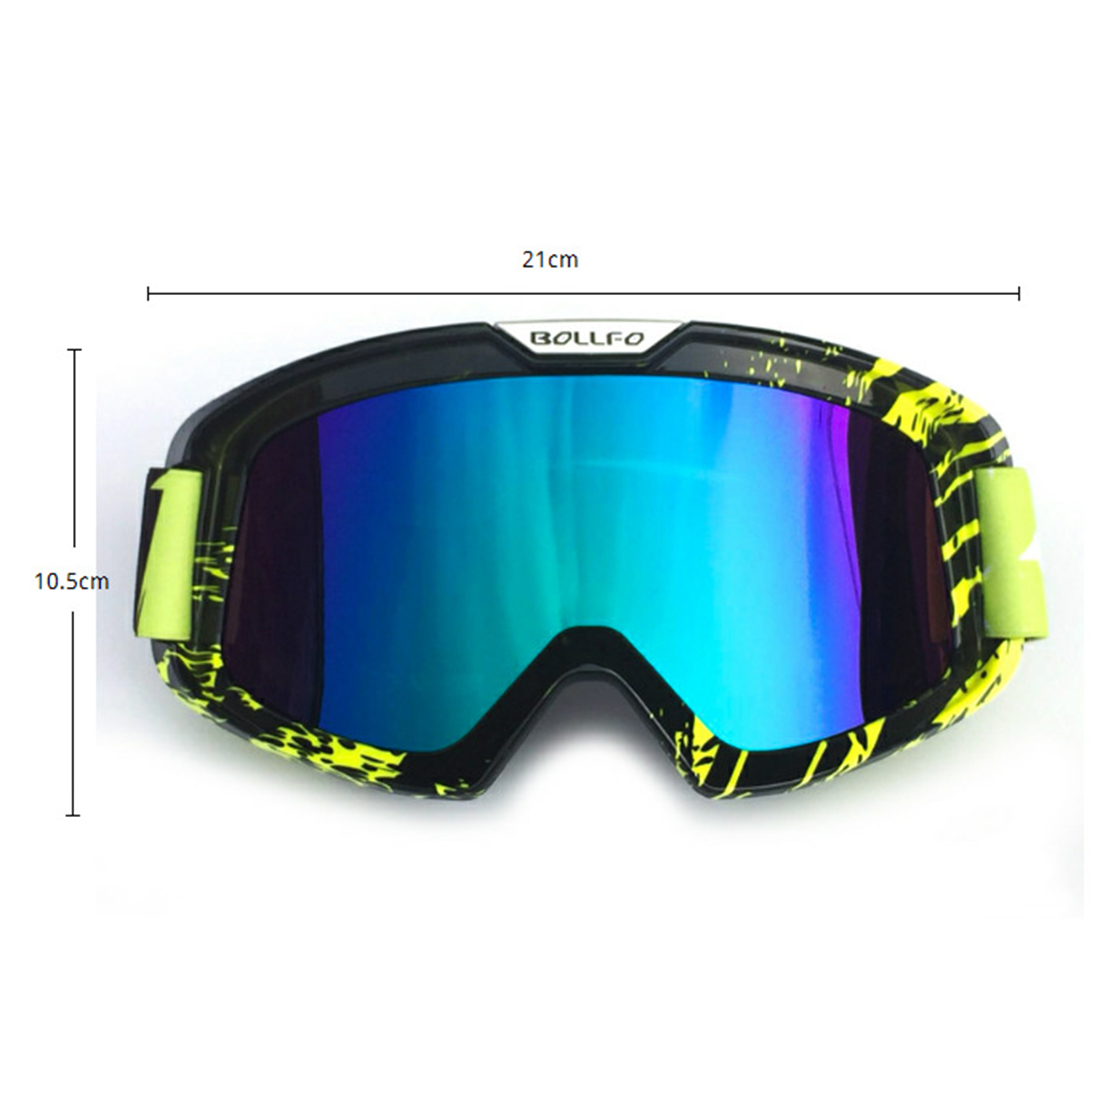 iguardor UV400 Outdoor Cycling Goggles Windproof Eyes Protector Skiing Sunglasses Black and Green Colorful Lens in Cycling Eyewear from Sports Entertainment